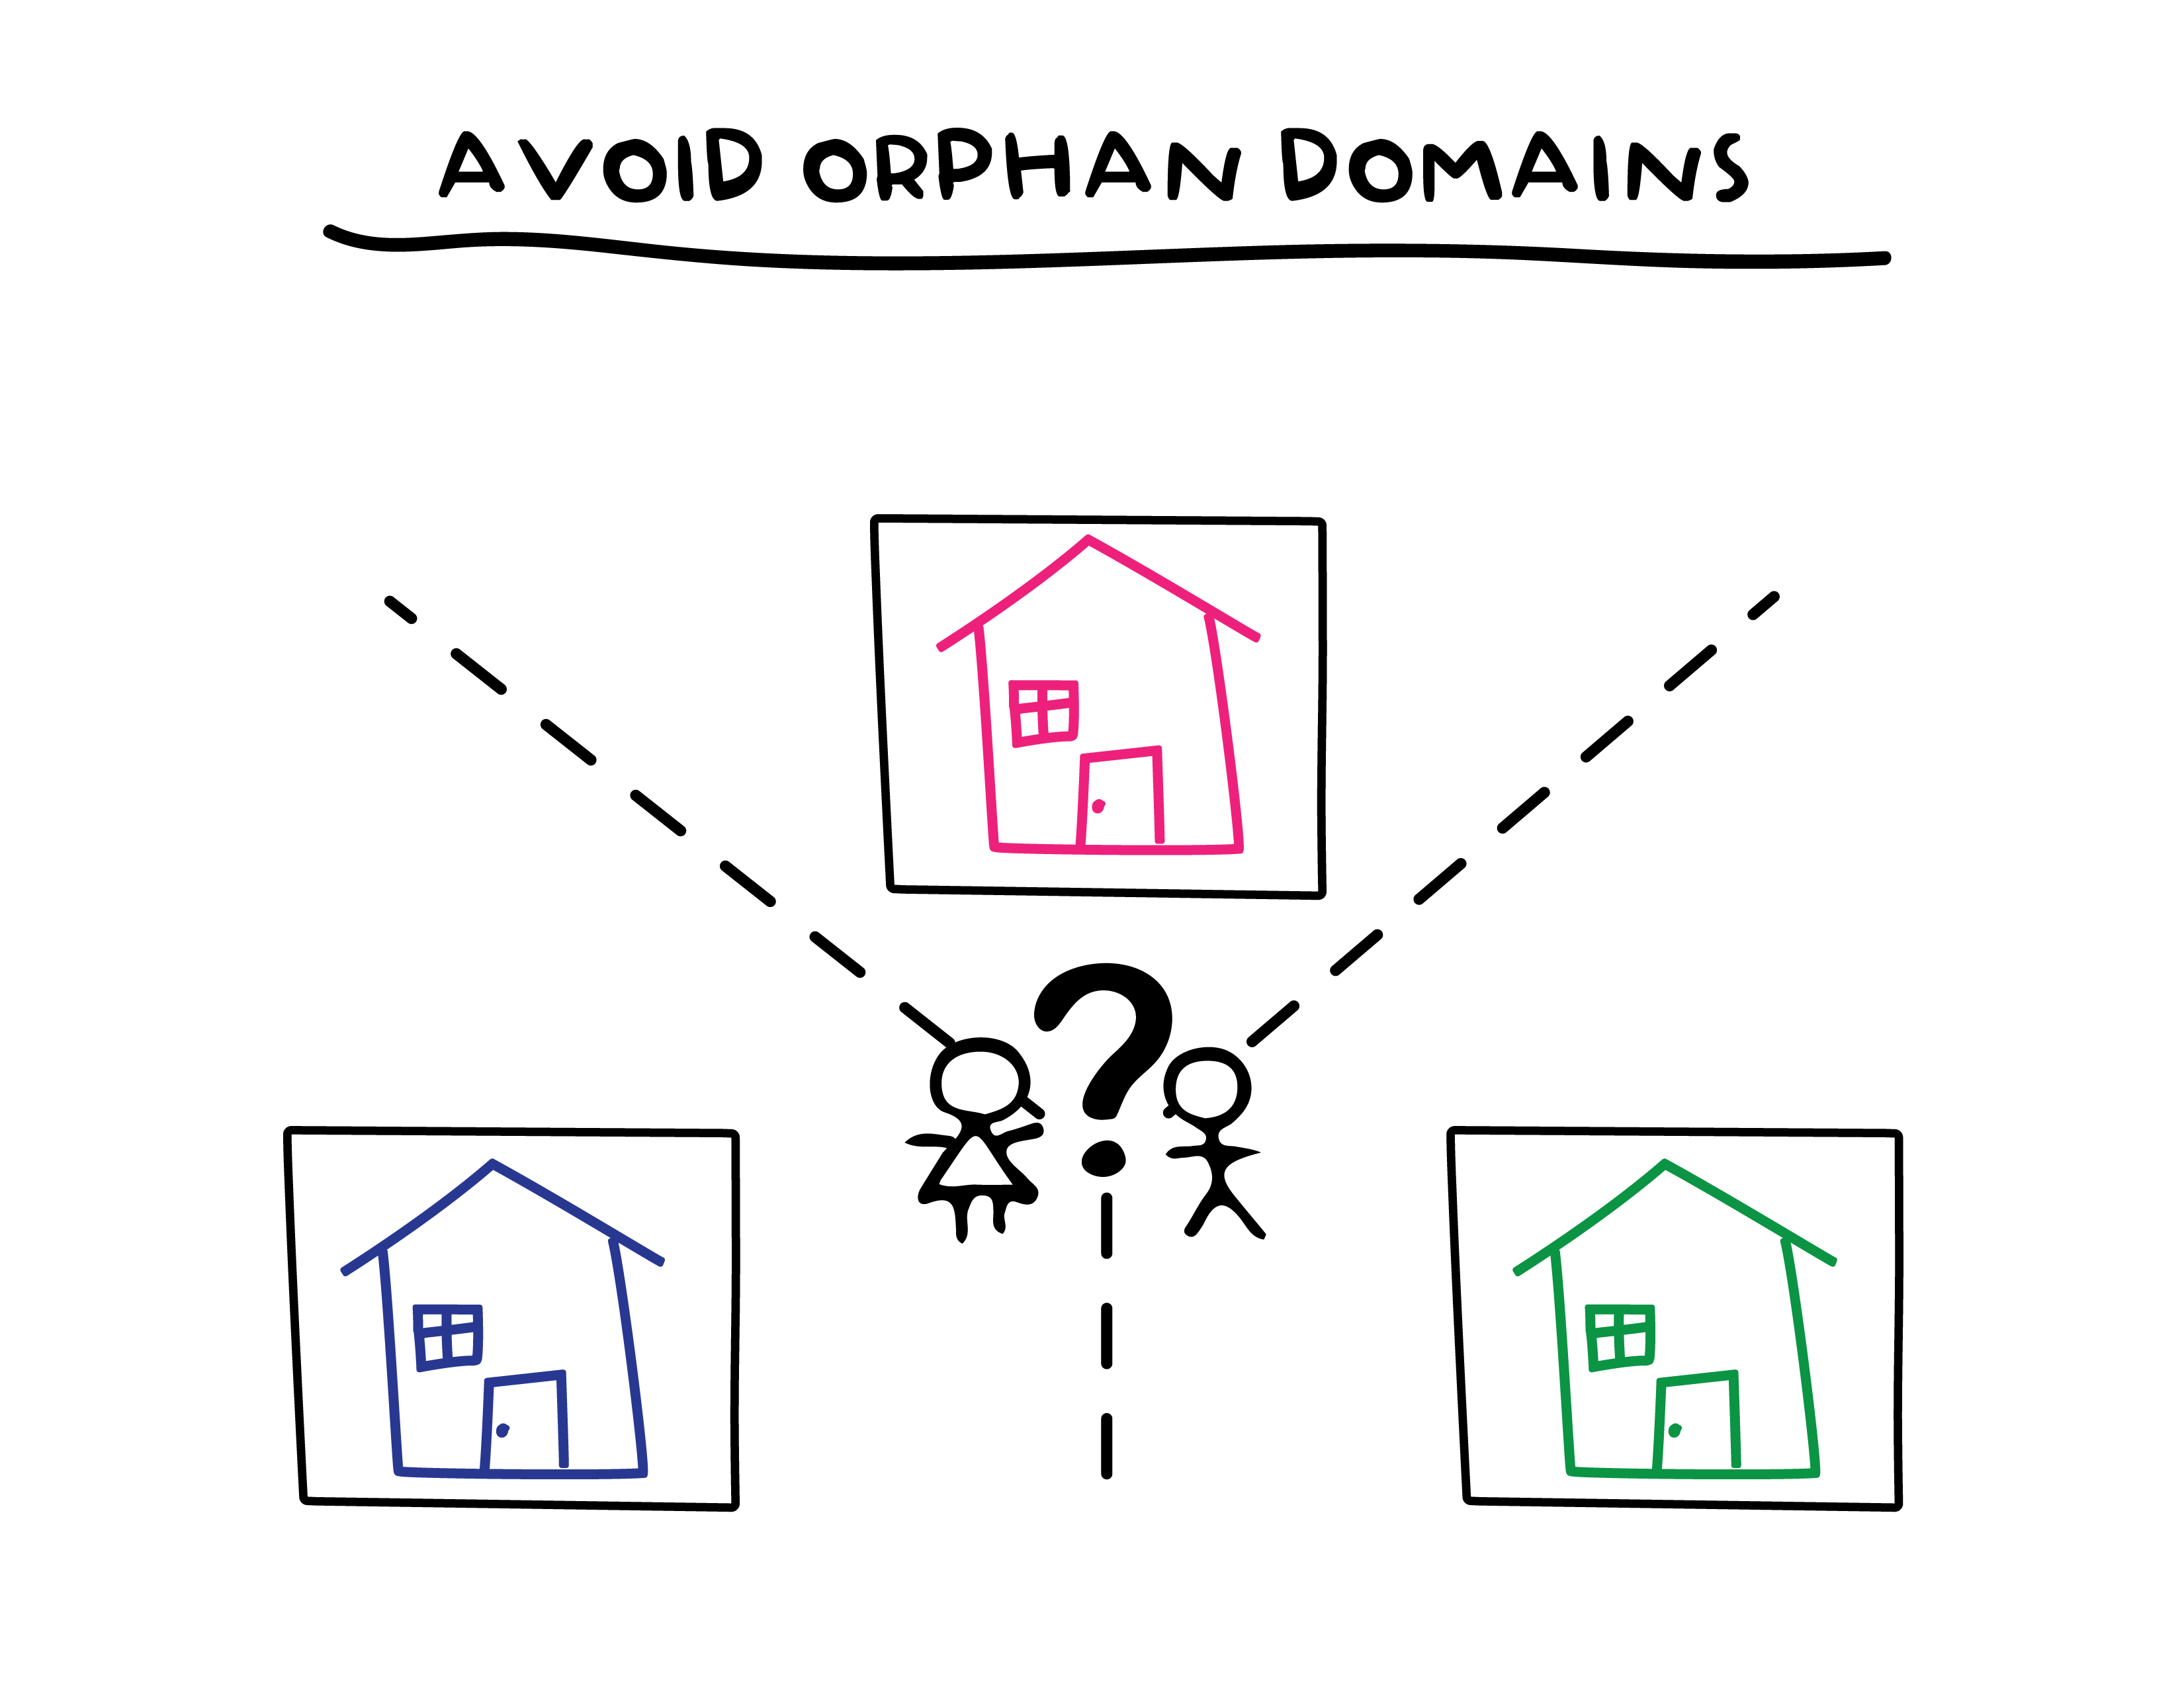 Three property domains shown with multiple owners and a question mark.